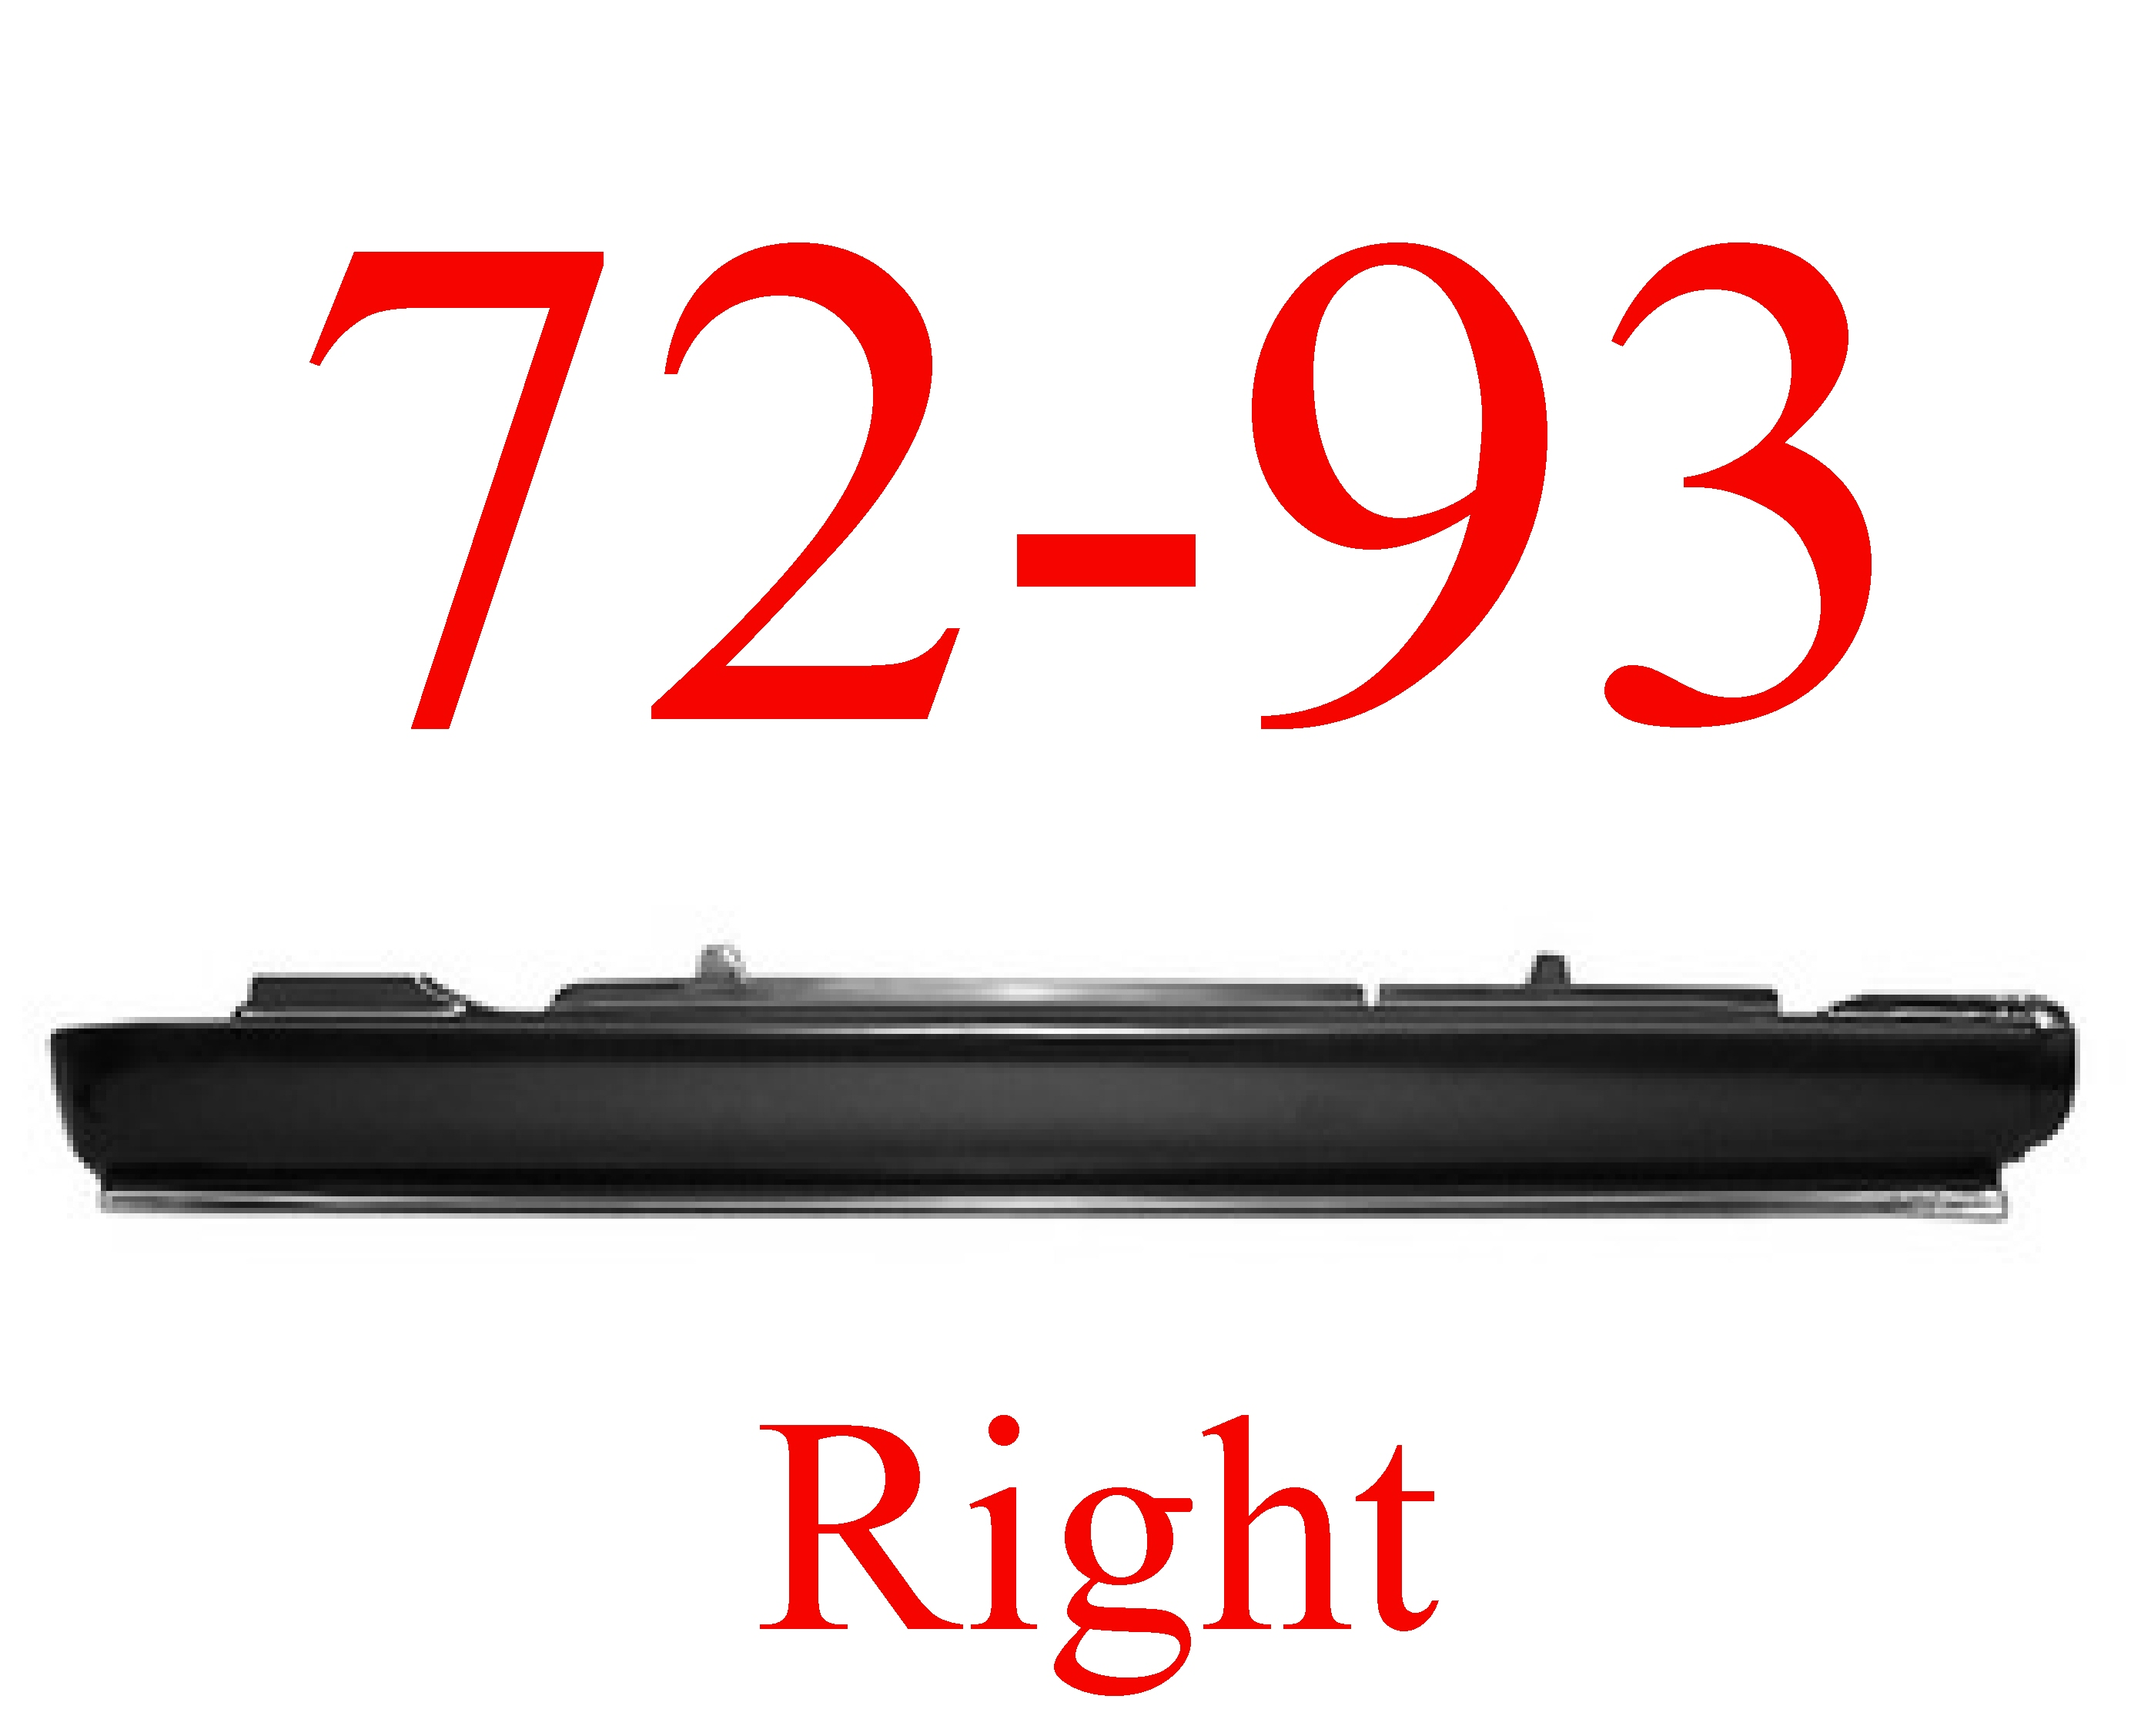 72-93 Dodge Ram RIGHT Extended Rocker Panel